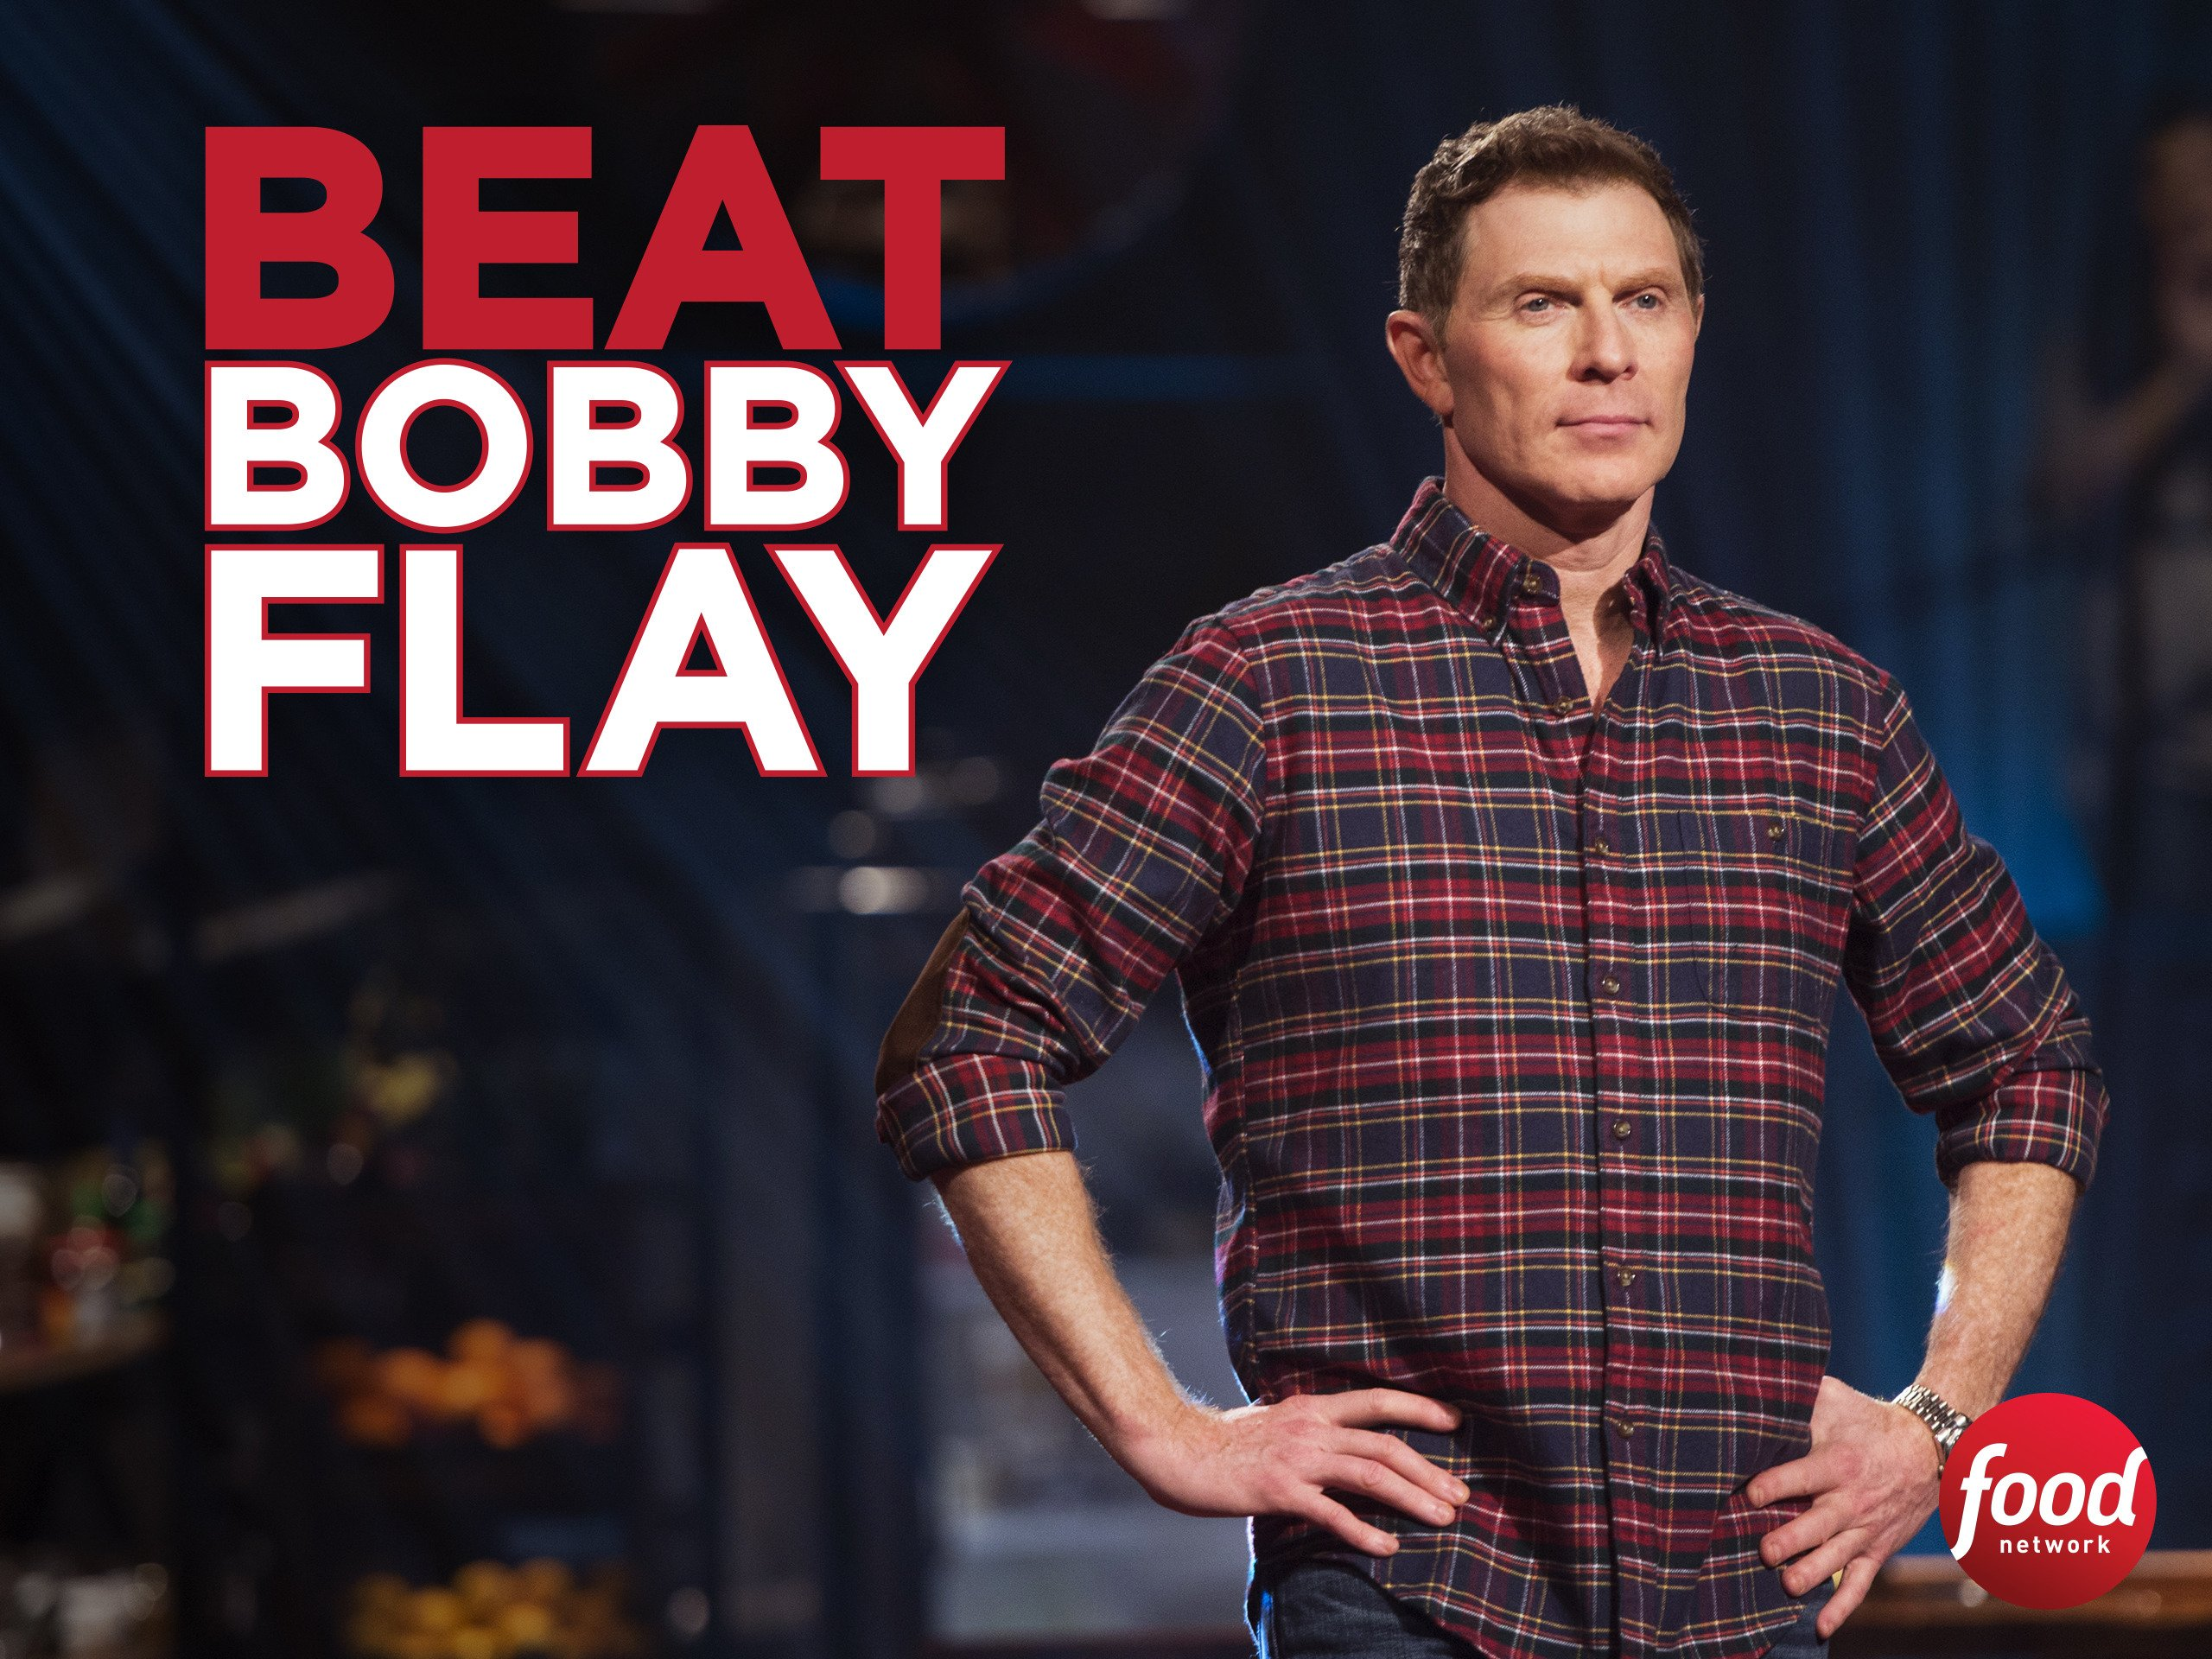 beat bobby flay episodes where he loses